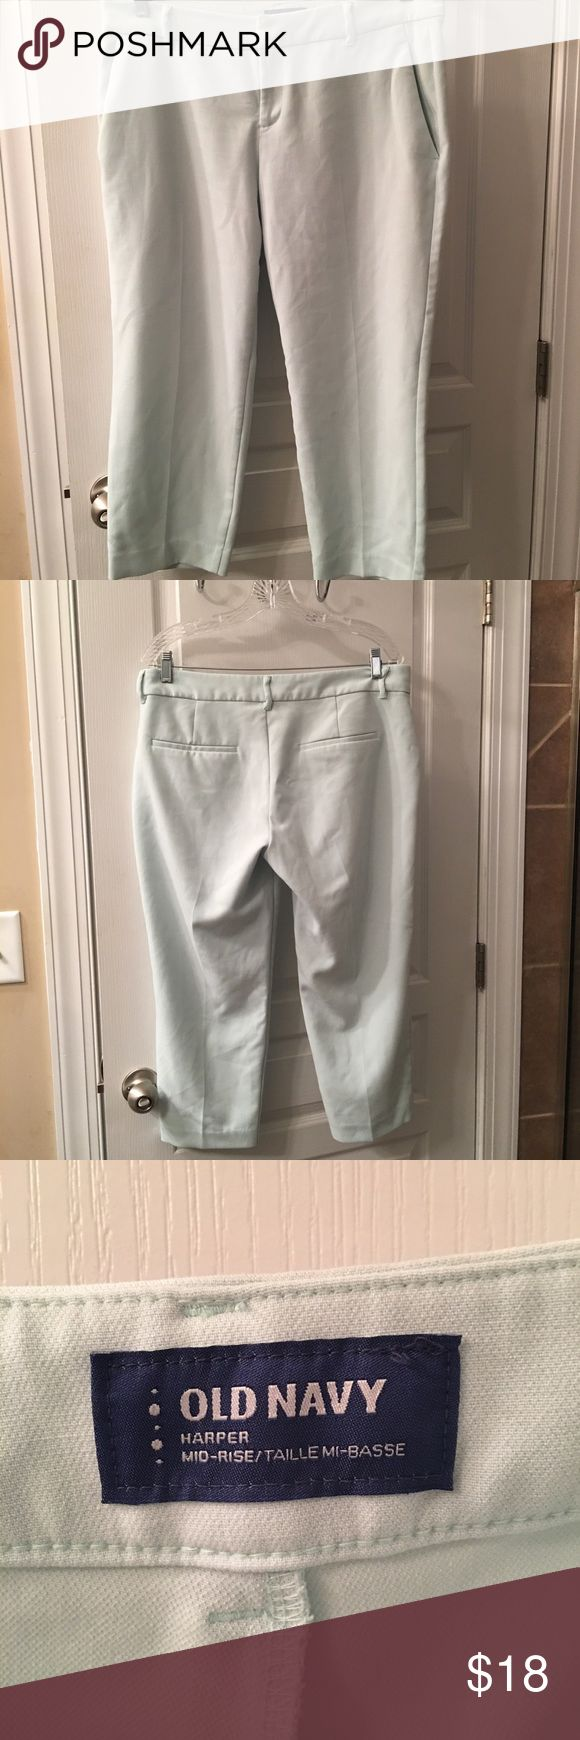 Old Navy Harper mid rise capri's EUC. Light mint color. Old Navy Pants Capris